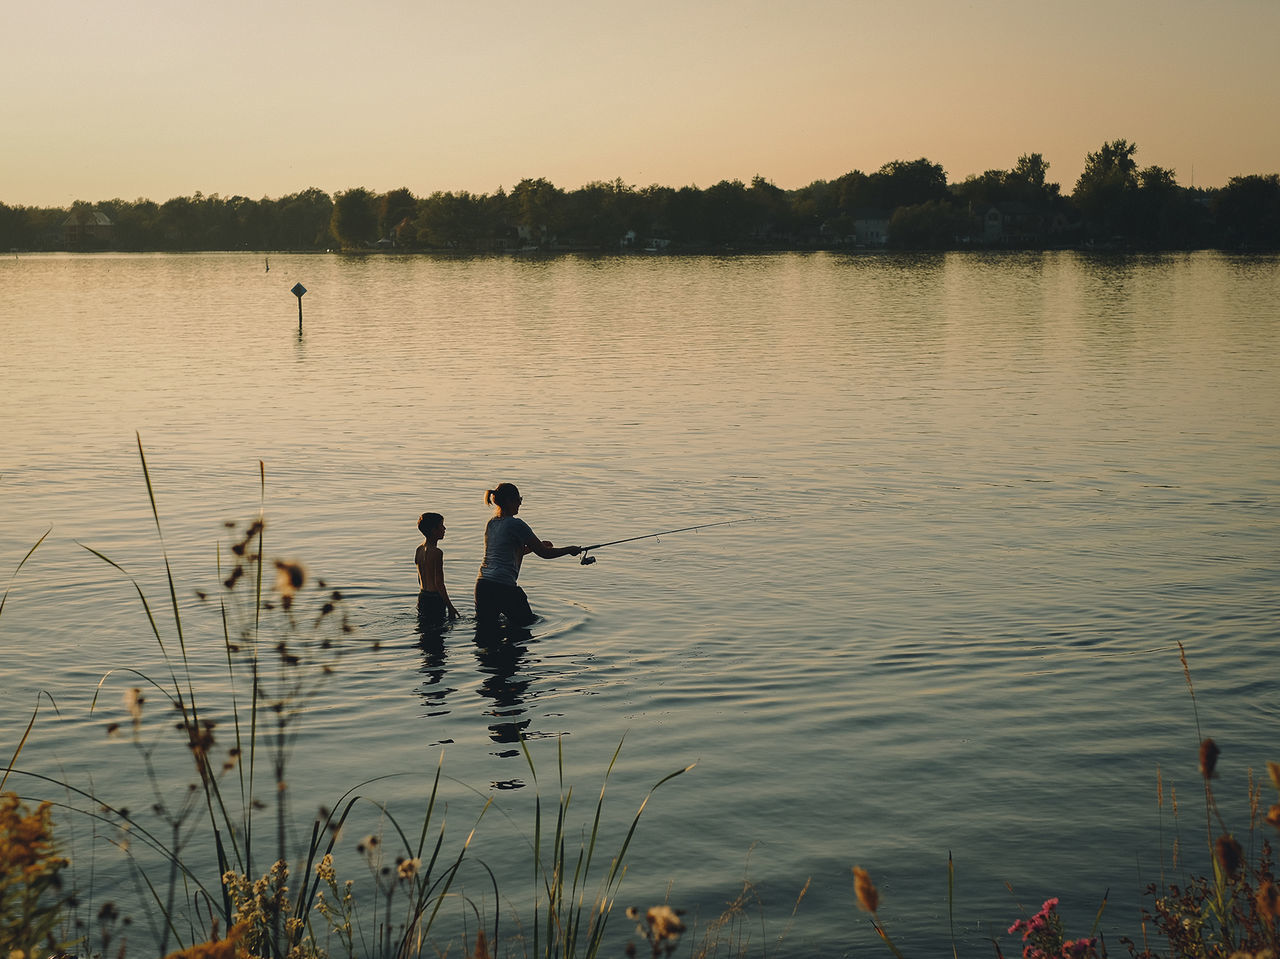 water, lake, sky, men, real people, beauty in nature, nature, fishing, reflection, two people, non-urban scene, tranquil scene, rod, people, lifestyles, tranquility, scenics - nature, sunset, fishing rod, outdoors